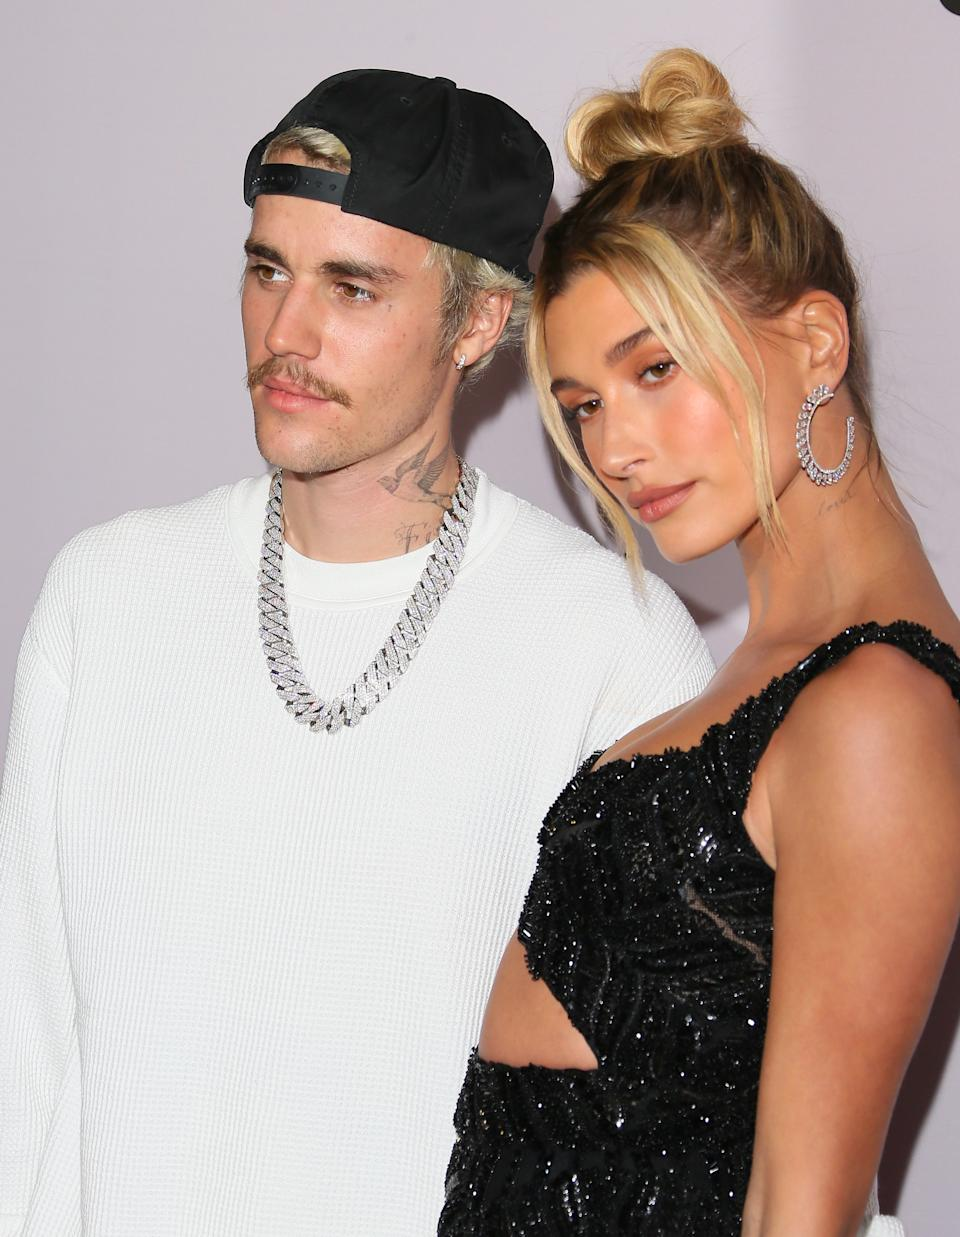 Justin Bieber has defended his wife from online attacks. (Photo: Jean Baptiste Lacroix/FilmMagic)